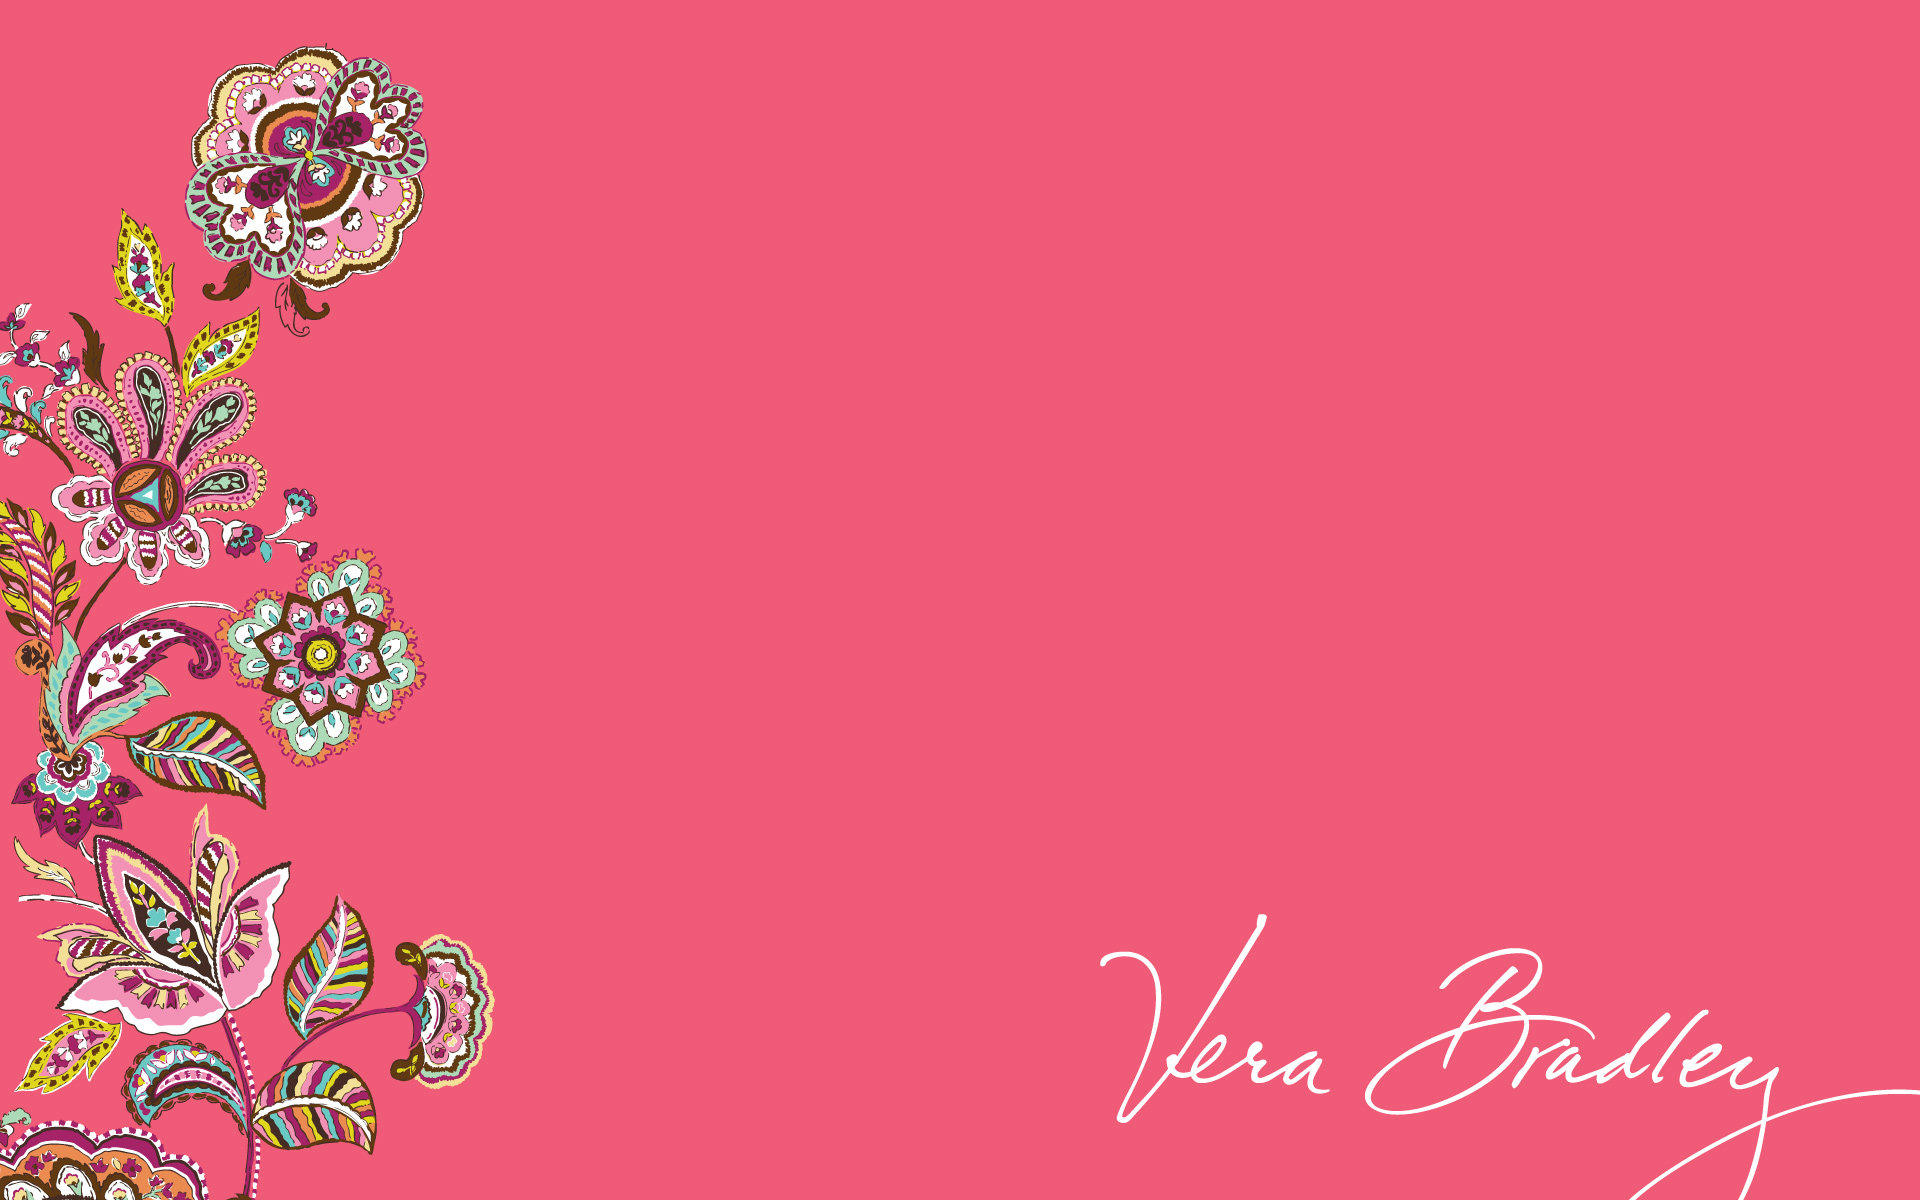 Vera Bradley Images Wallpaper Hd Wallpaper And Background